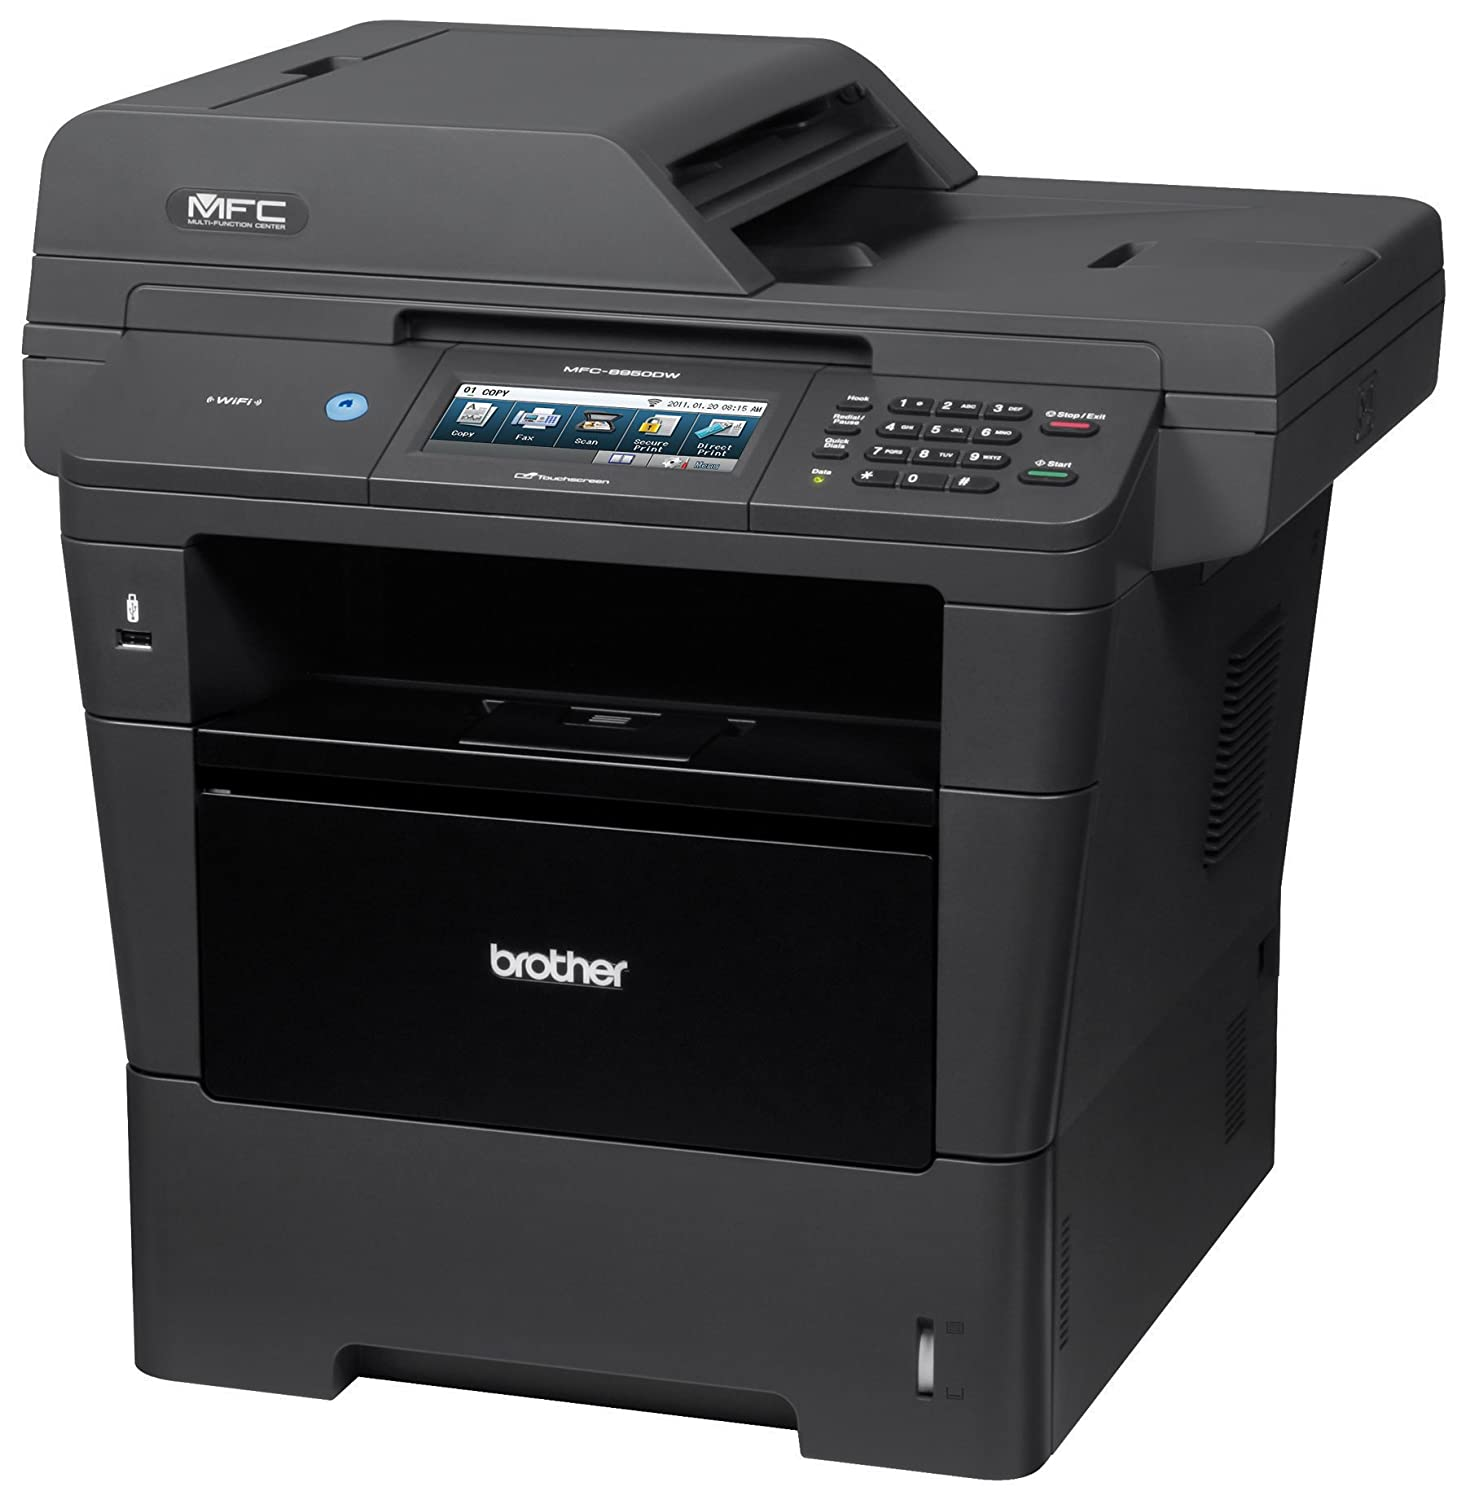 Brother MFC8950DW Wireless Monochrome Printer with Scanner, Copier and Fax